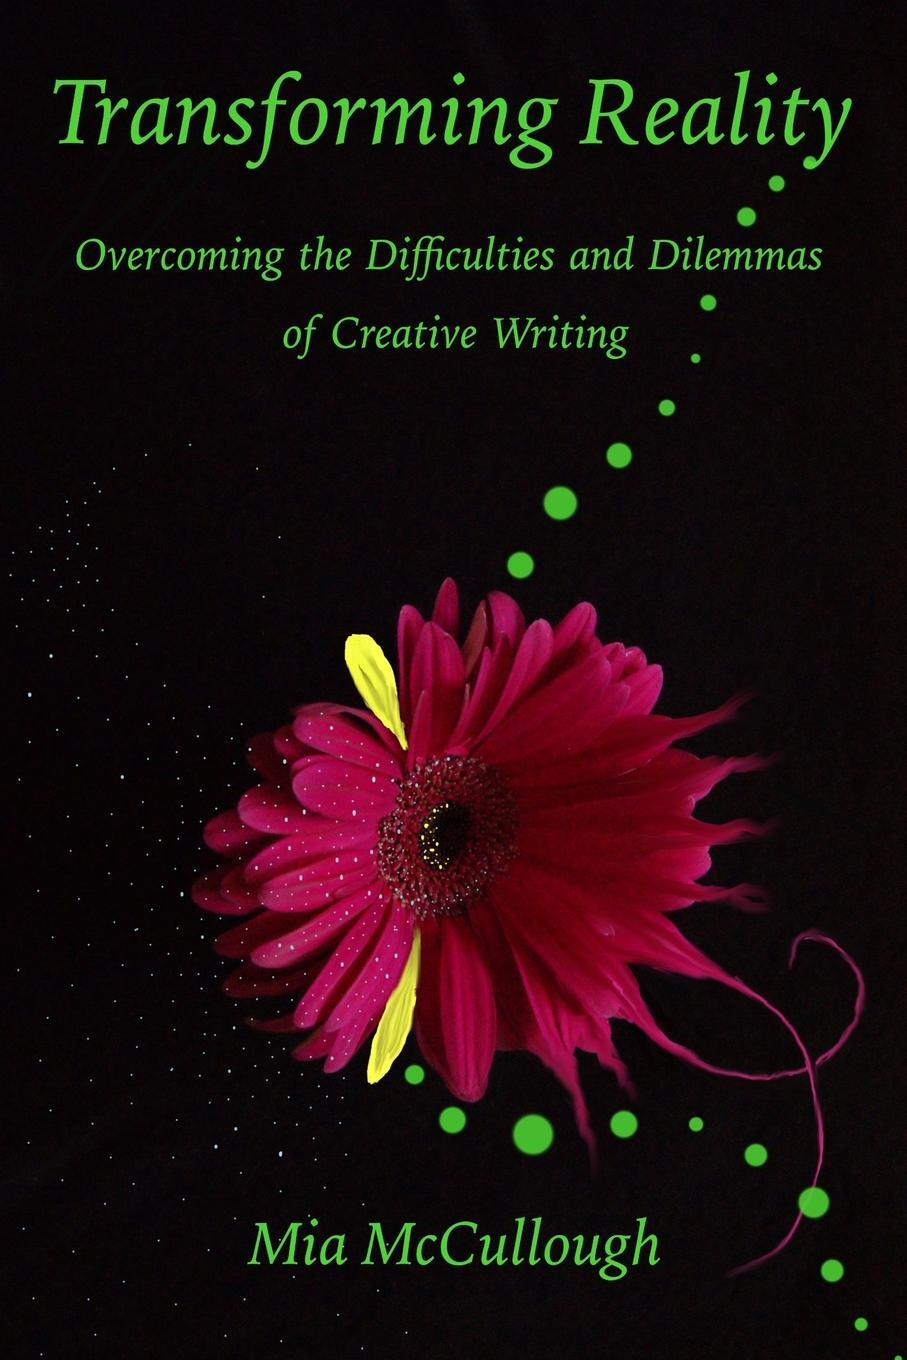 Transforming Reality. Overcoming the Difficulties and Dilemmas of Creative Writing